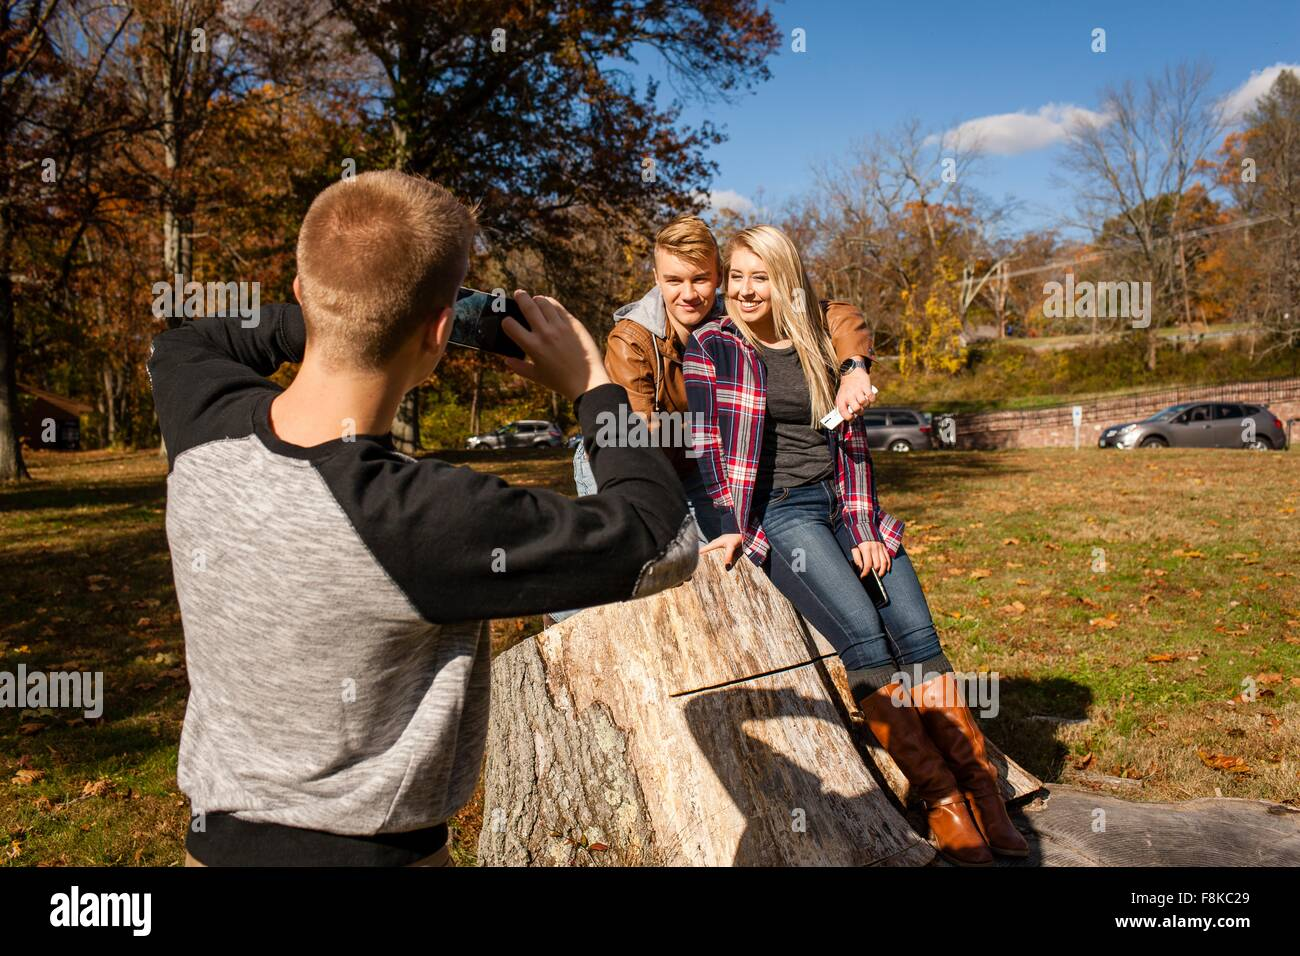 Teenage boy photographing brother and adult sister in autumn park - Stock Image